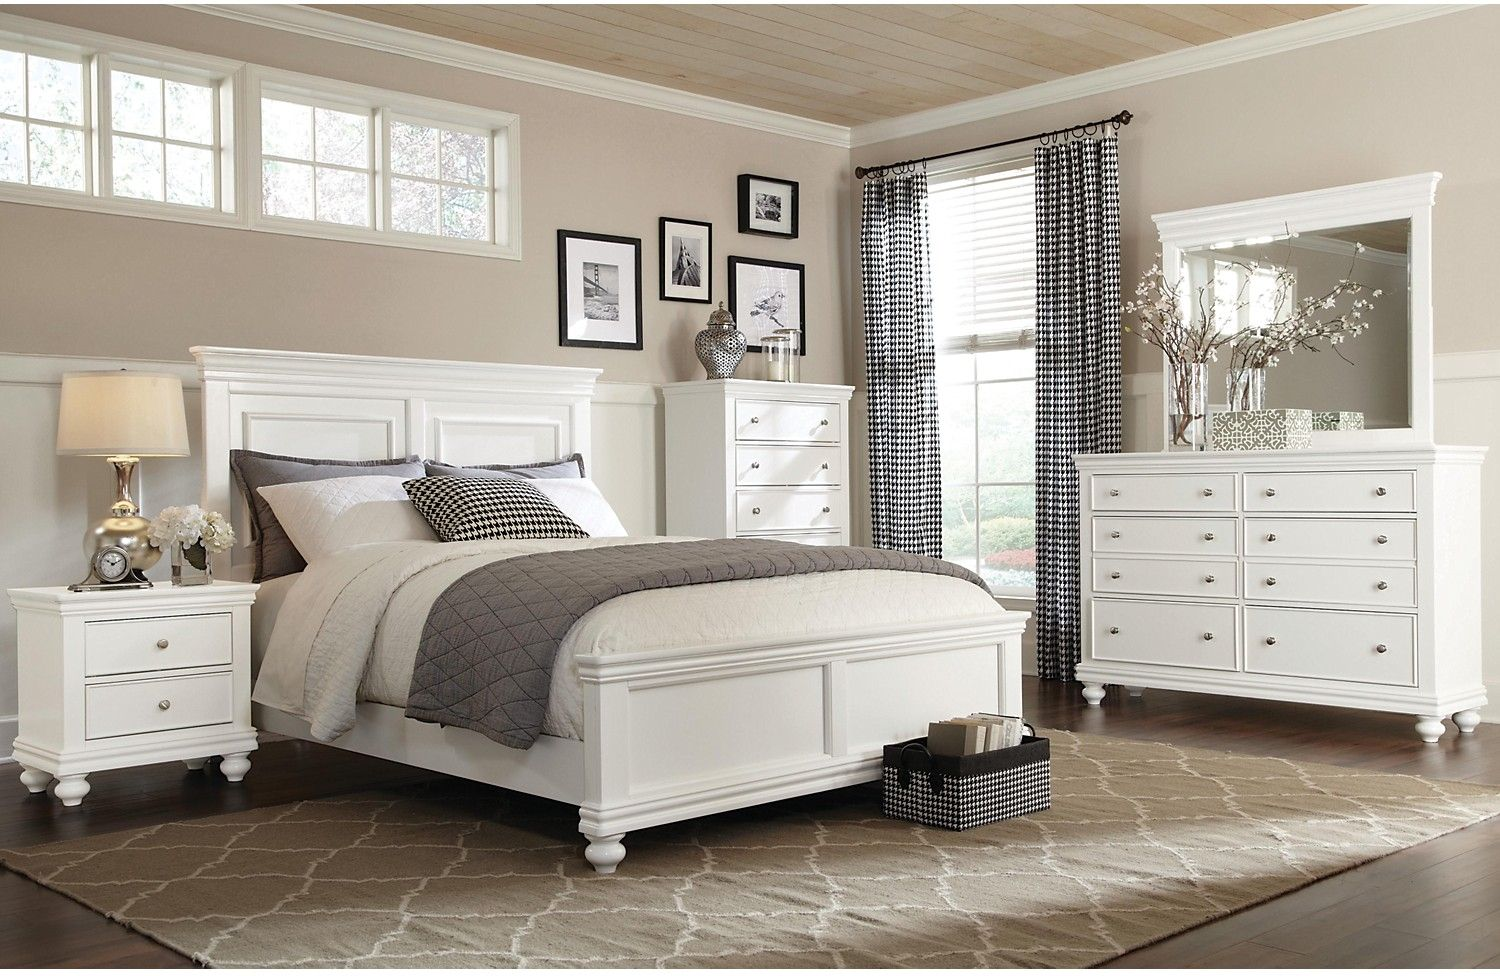 bridgeport 6 piece queen bedroom set white queen 20140 | 7d450176b296f4ce7dd7f8b1b92f72c2